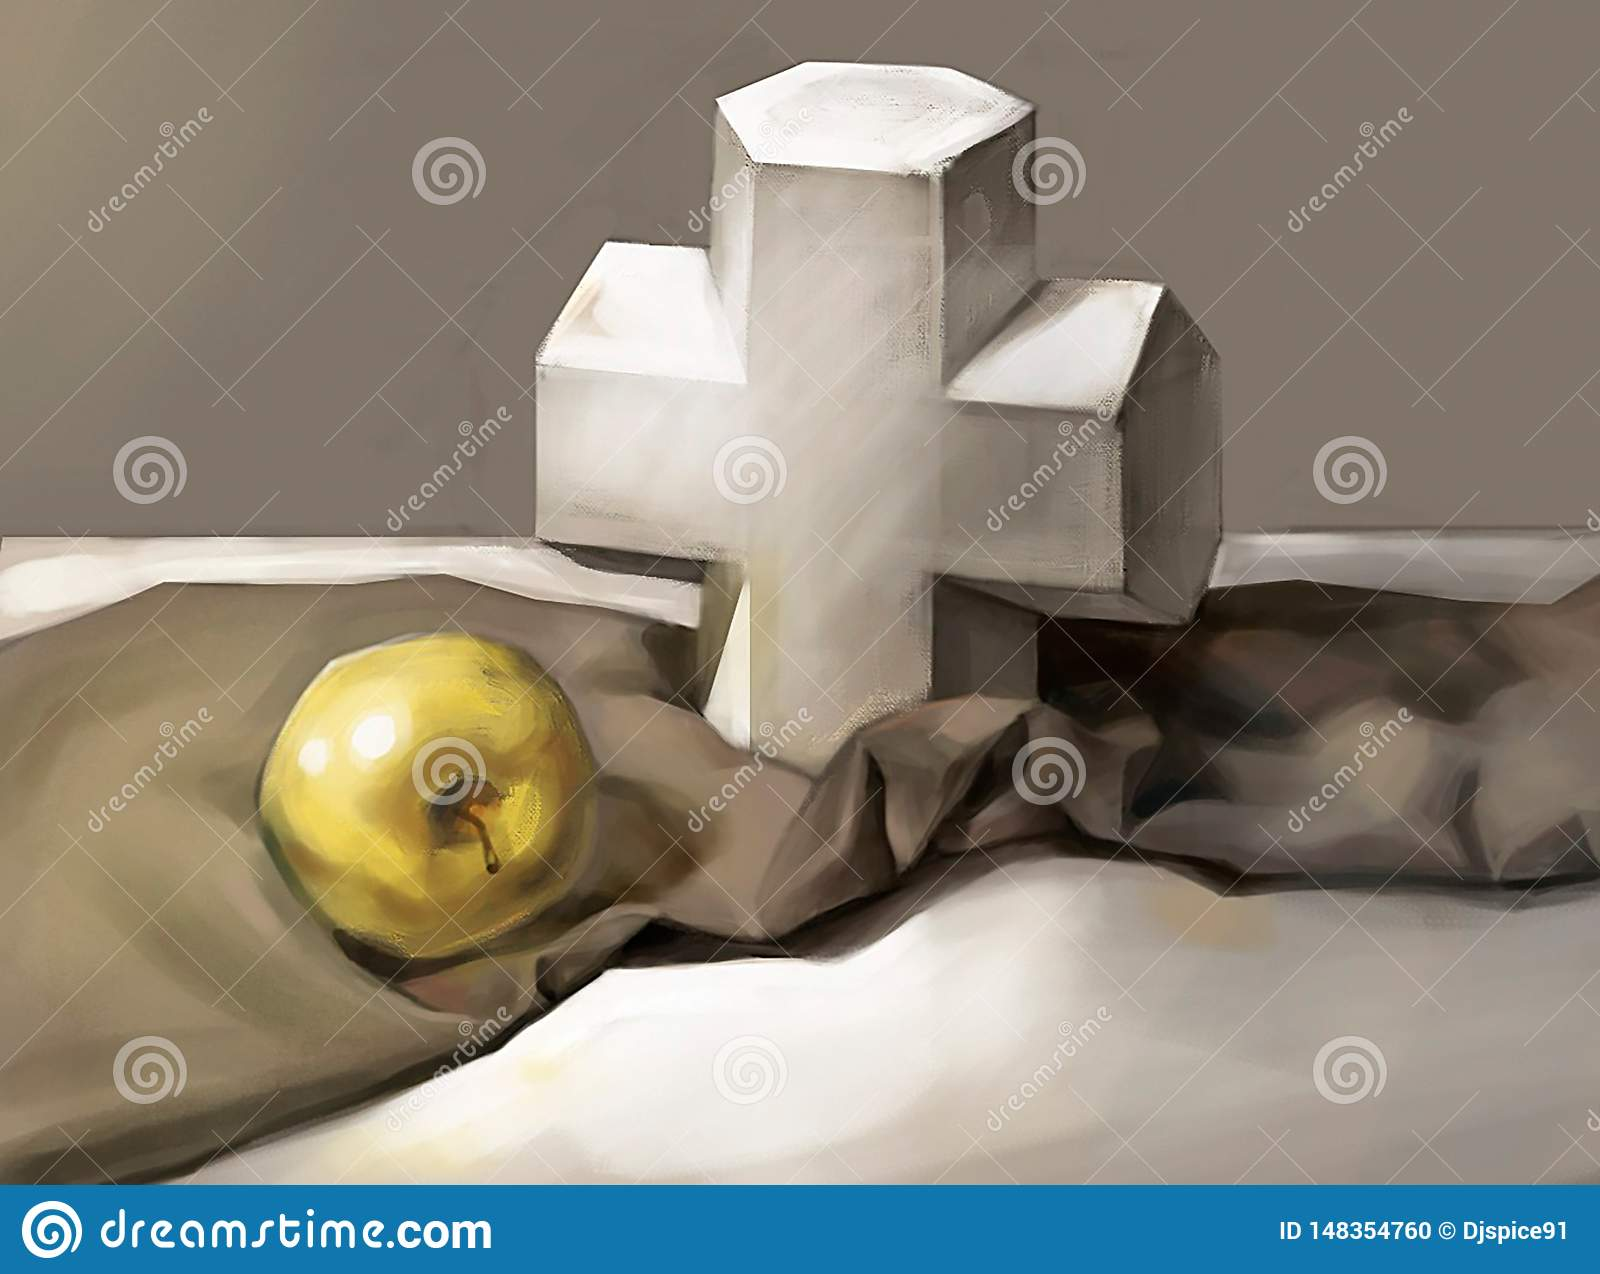 Illustration of a cross and an Apple